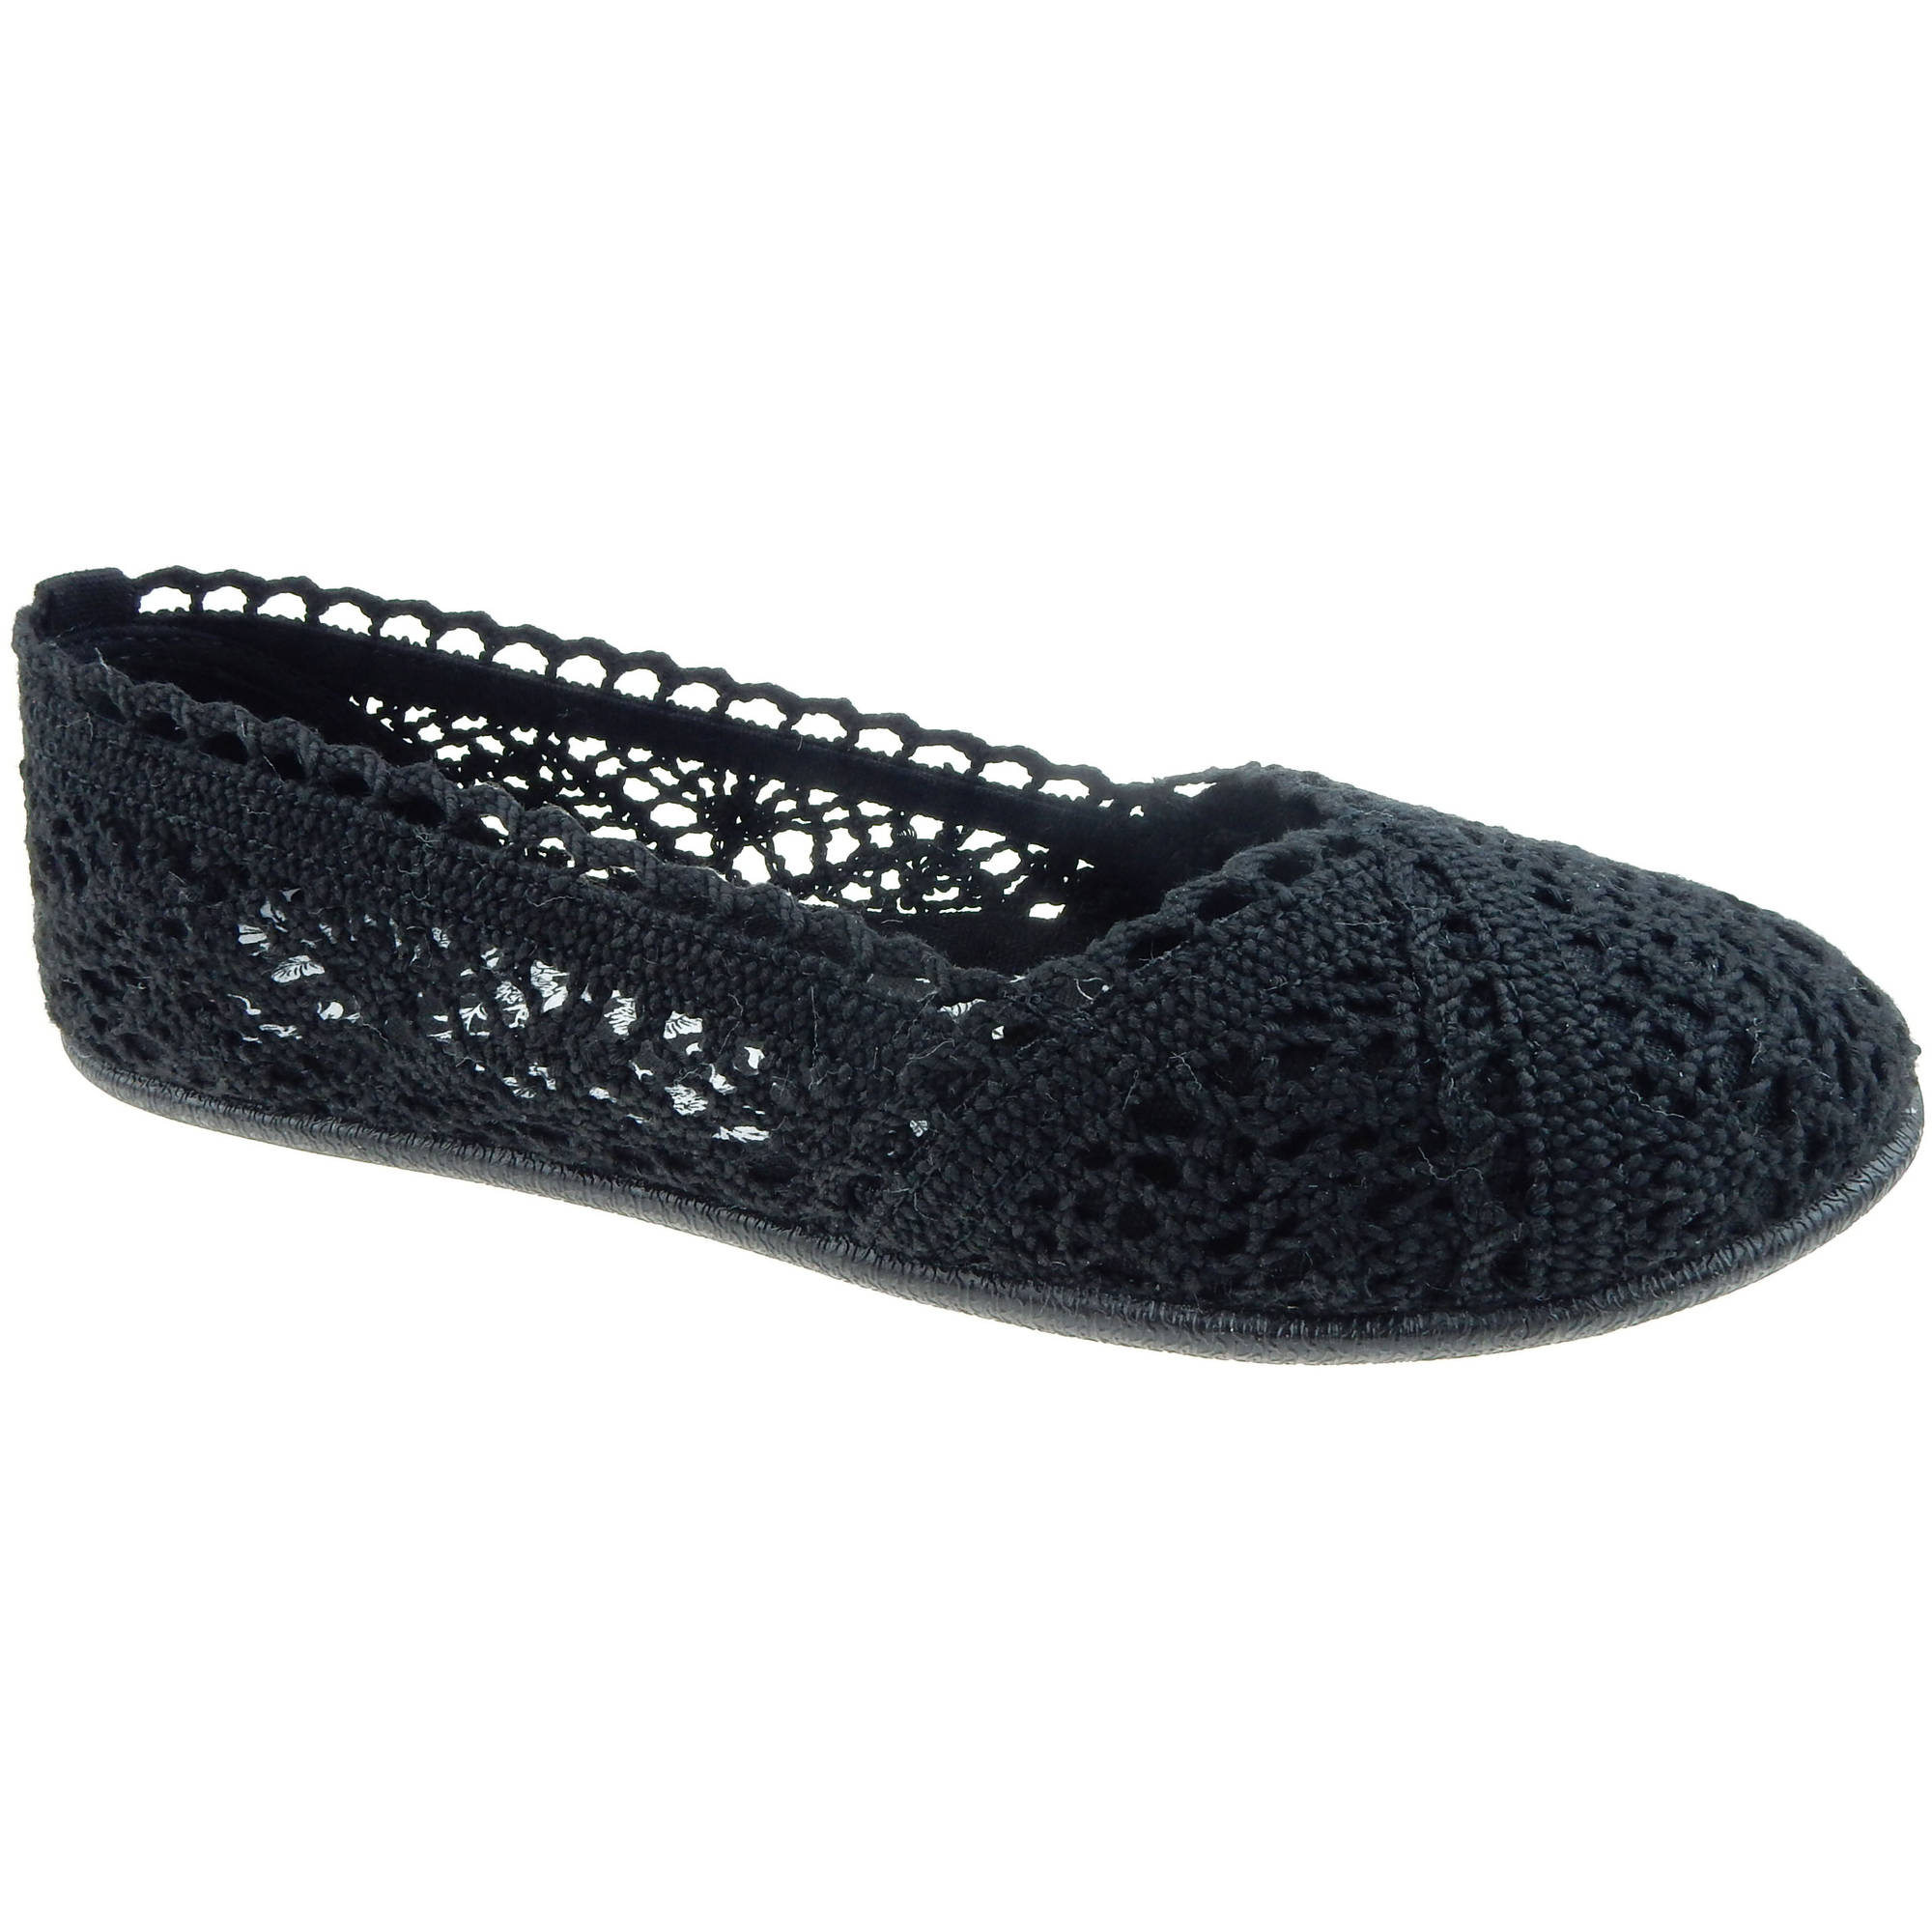 Faded Glory Women's Crochet Casual Flat